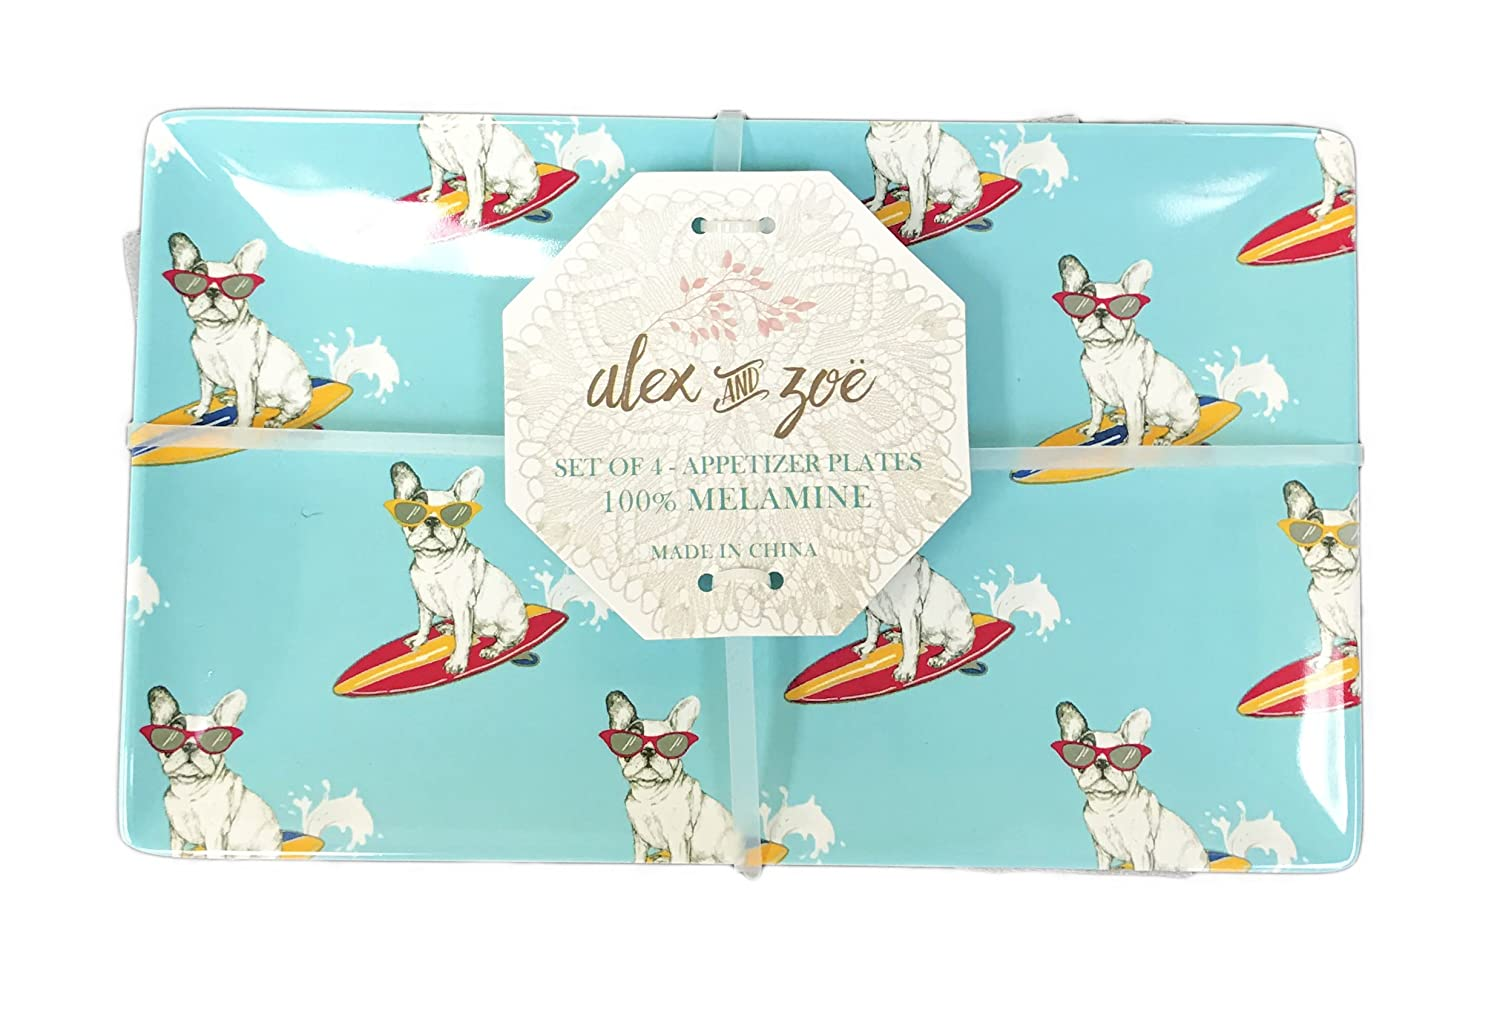 Surfing French Bulldog Sporting Cool Sunglasses Indoor/Outdoor Set of 4 Novelty Melamine Dessert Appetizer Plates Alex and Zoe